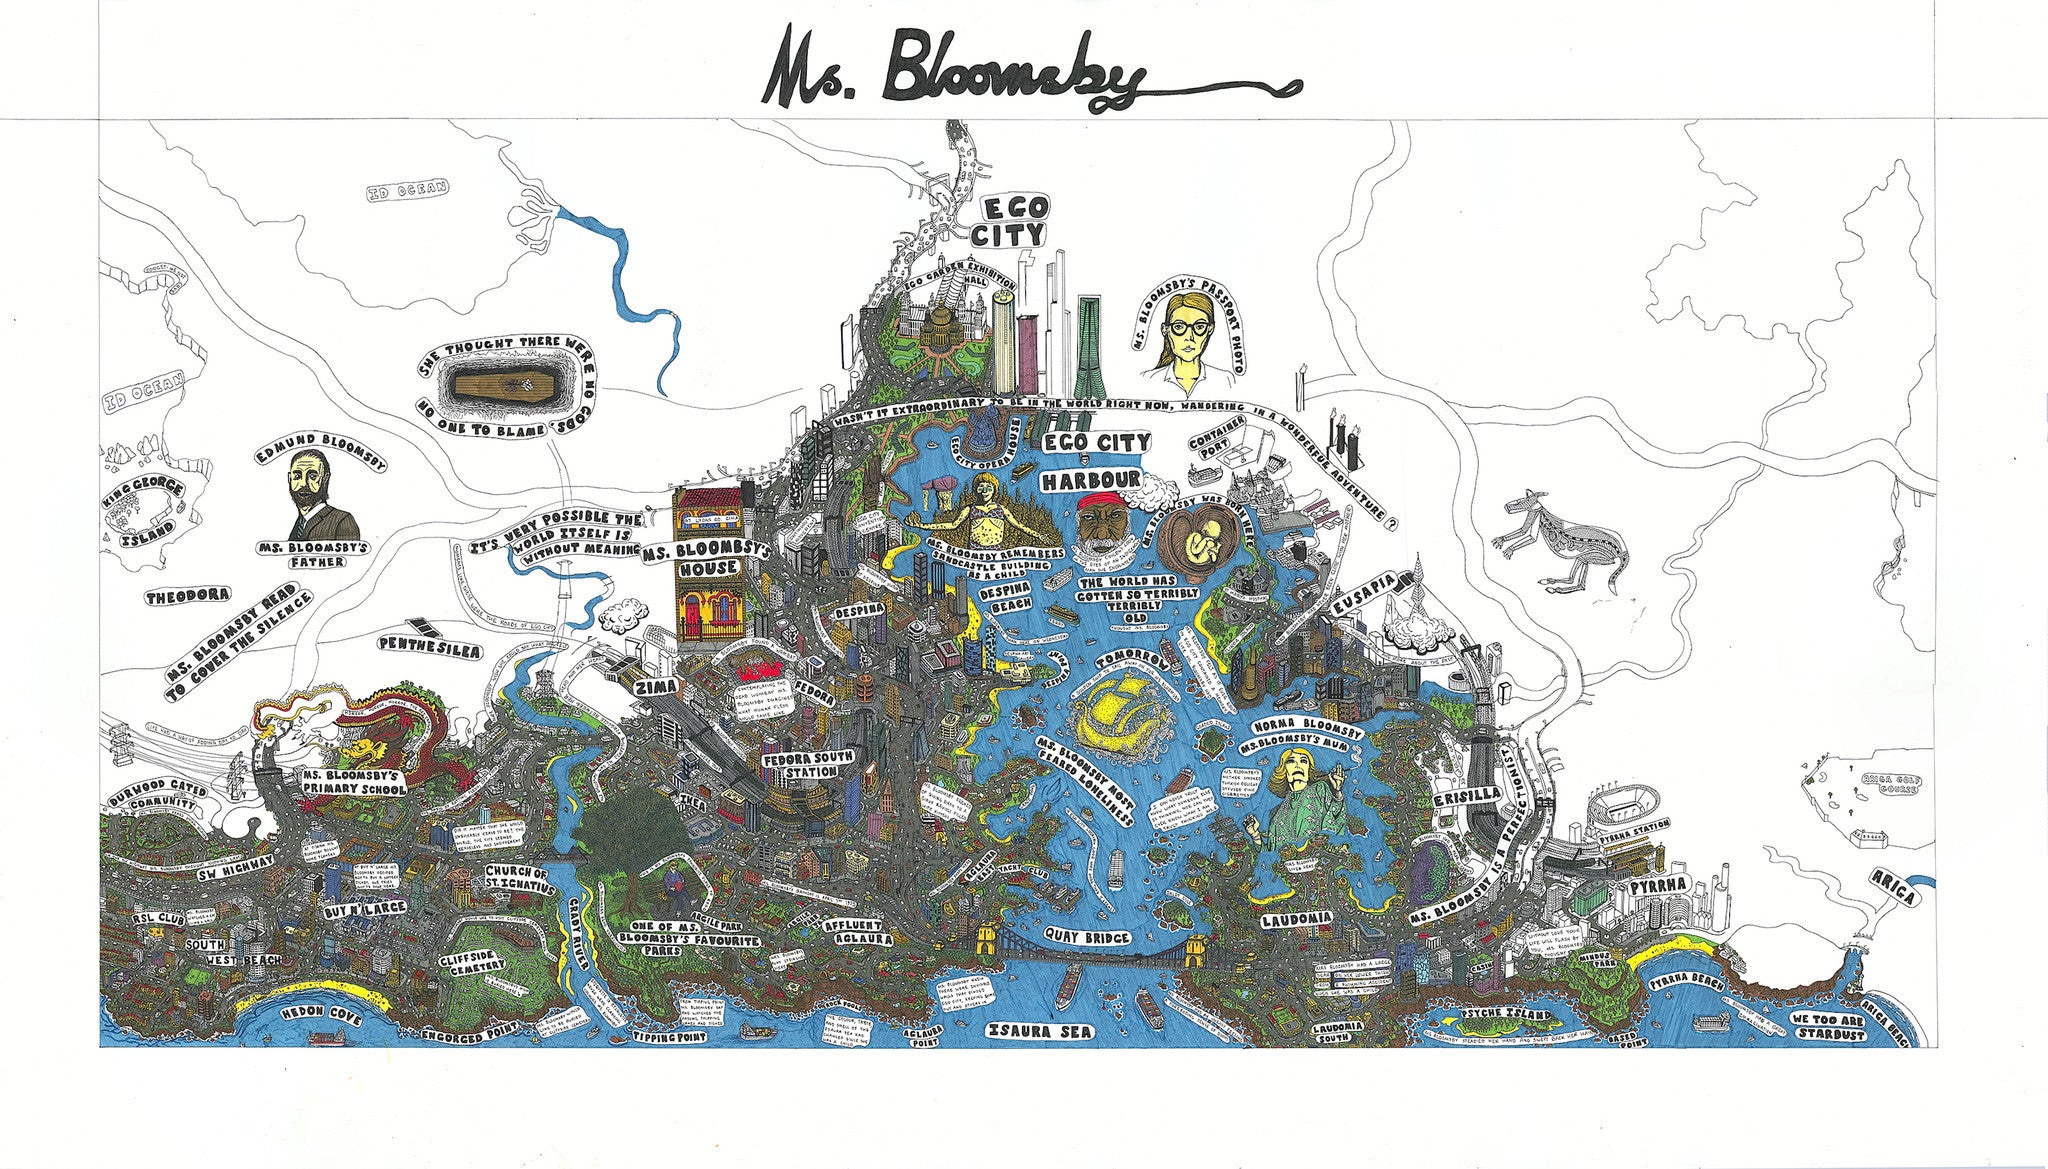 Ms Bloomsby, Jeremy Smith 2013